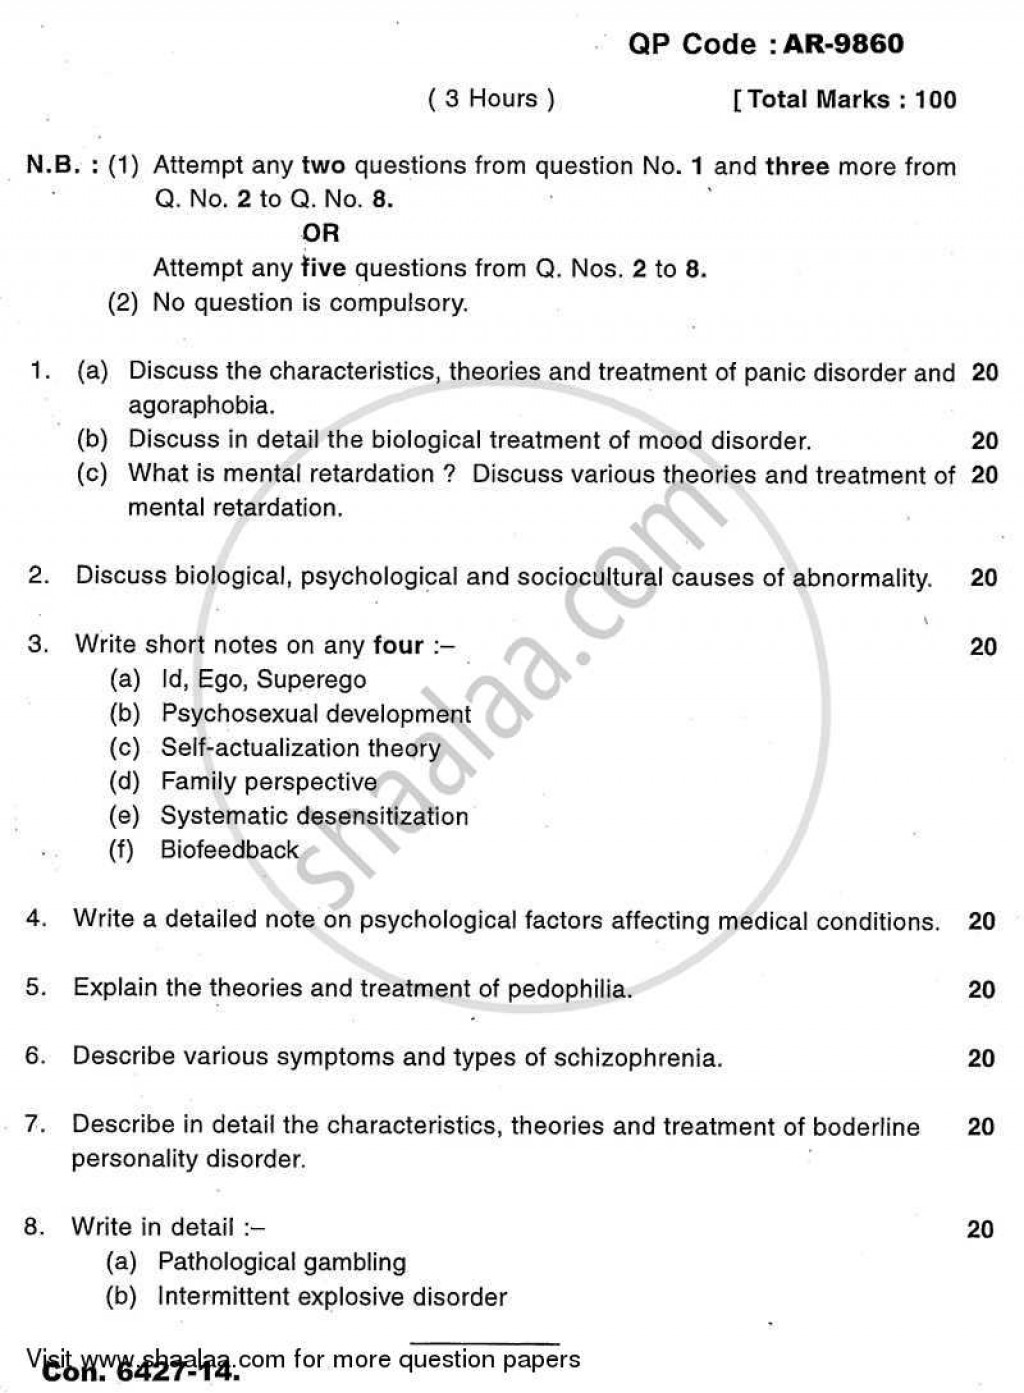 006 University Of Mumbai Bachelor Abnormal Psychology Ty Yearly Pattern 3rd Year Tyba 2013 22439940333094318a79686c42f8b6c1c Essay Example Unforgettable Topics On Dreams Forensic Term Paper Extended Large